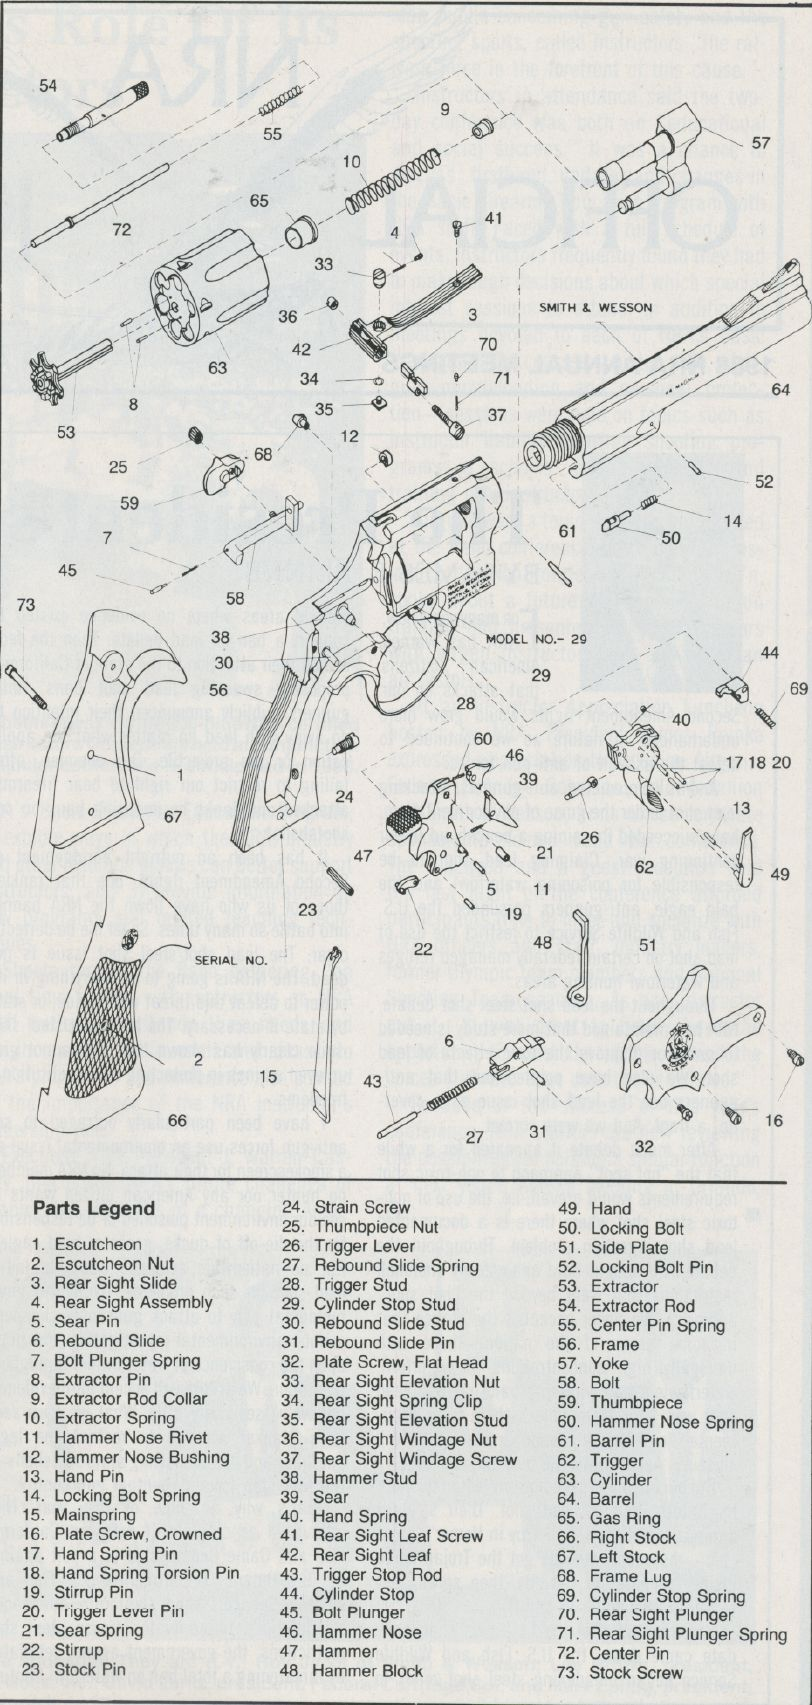 medium resolution of smith wesson model 29 exploded view exploded view handgun revolvers firearms